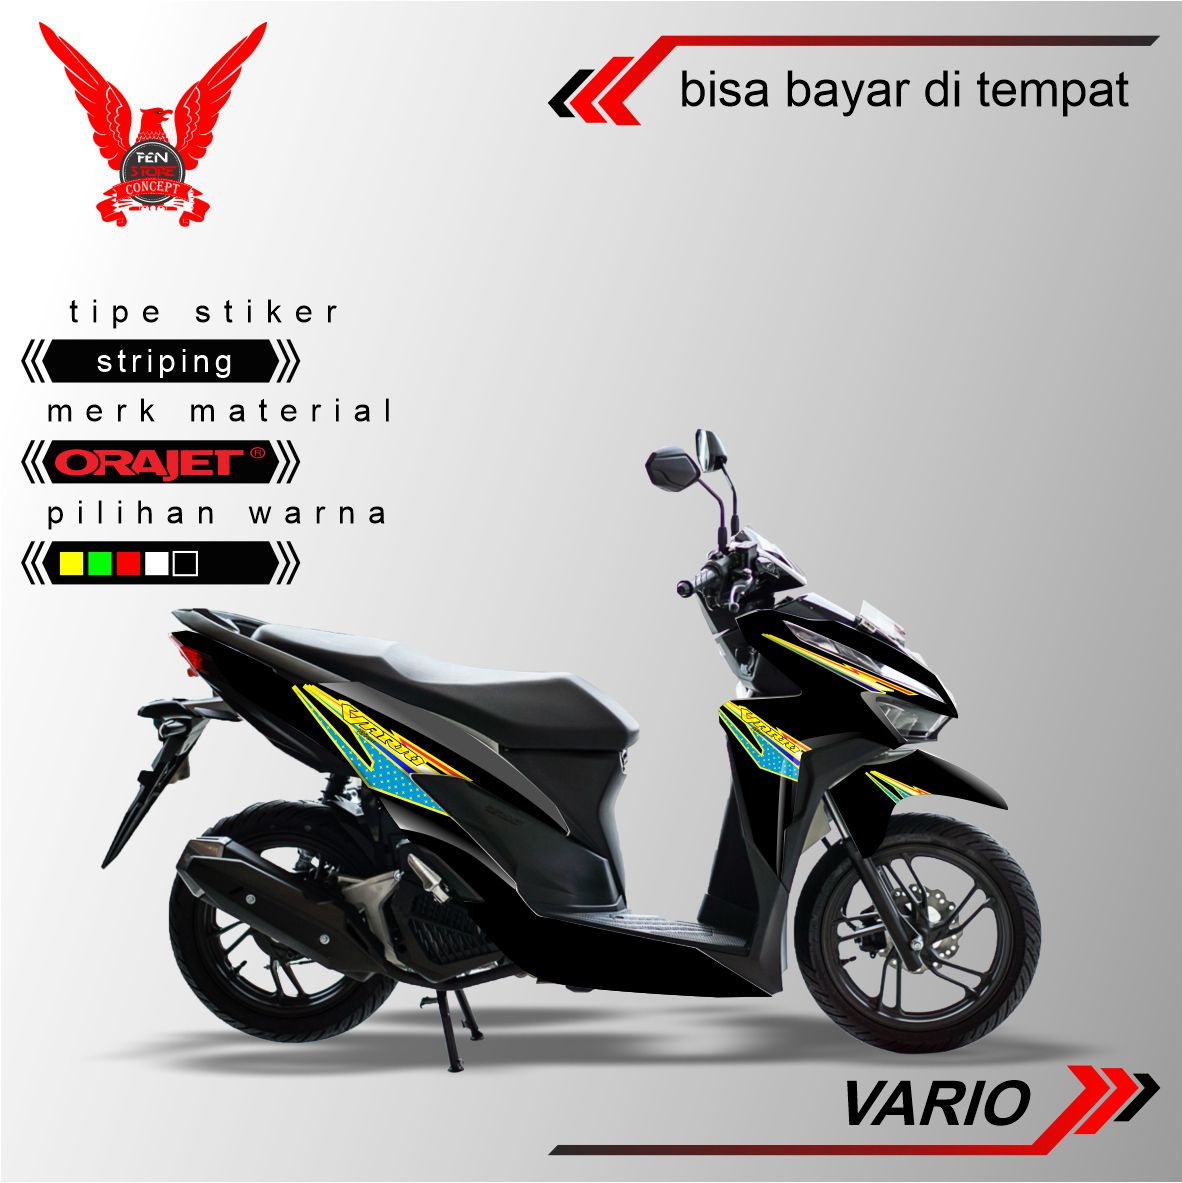 FENSTORE Cutting Sticker Aksesoris Dan Variasi Decal Sticker Thailook Vario Edition Concept Sticker